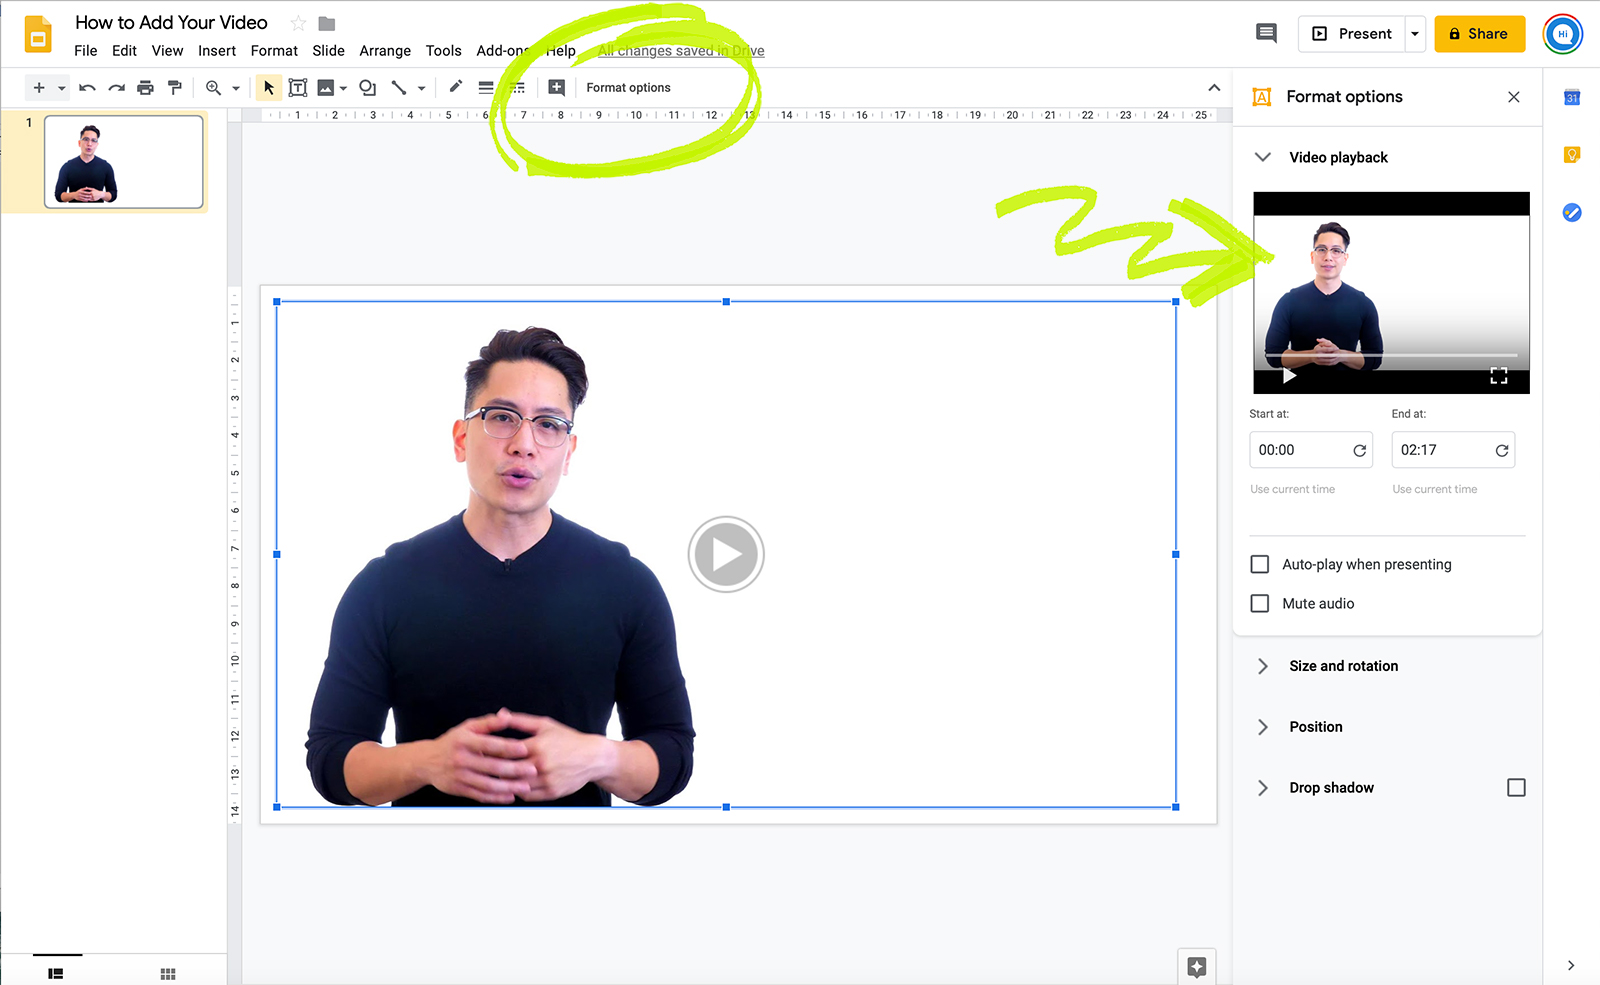 Video options in Google Slides